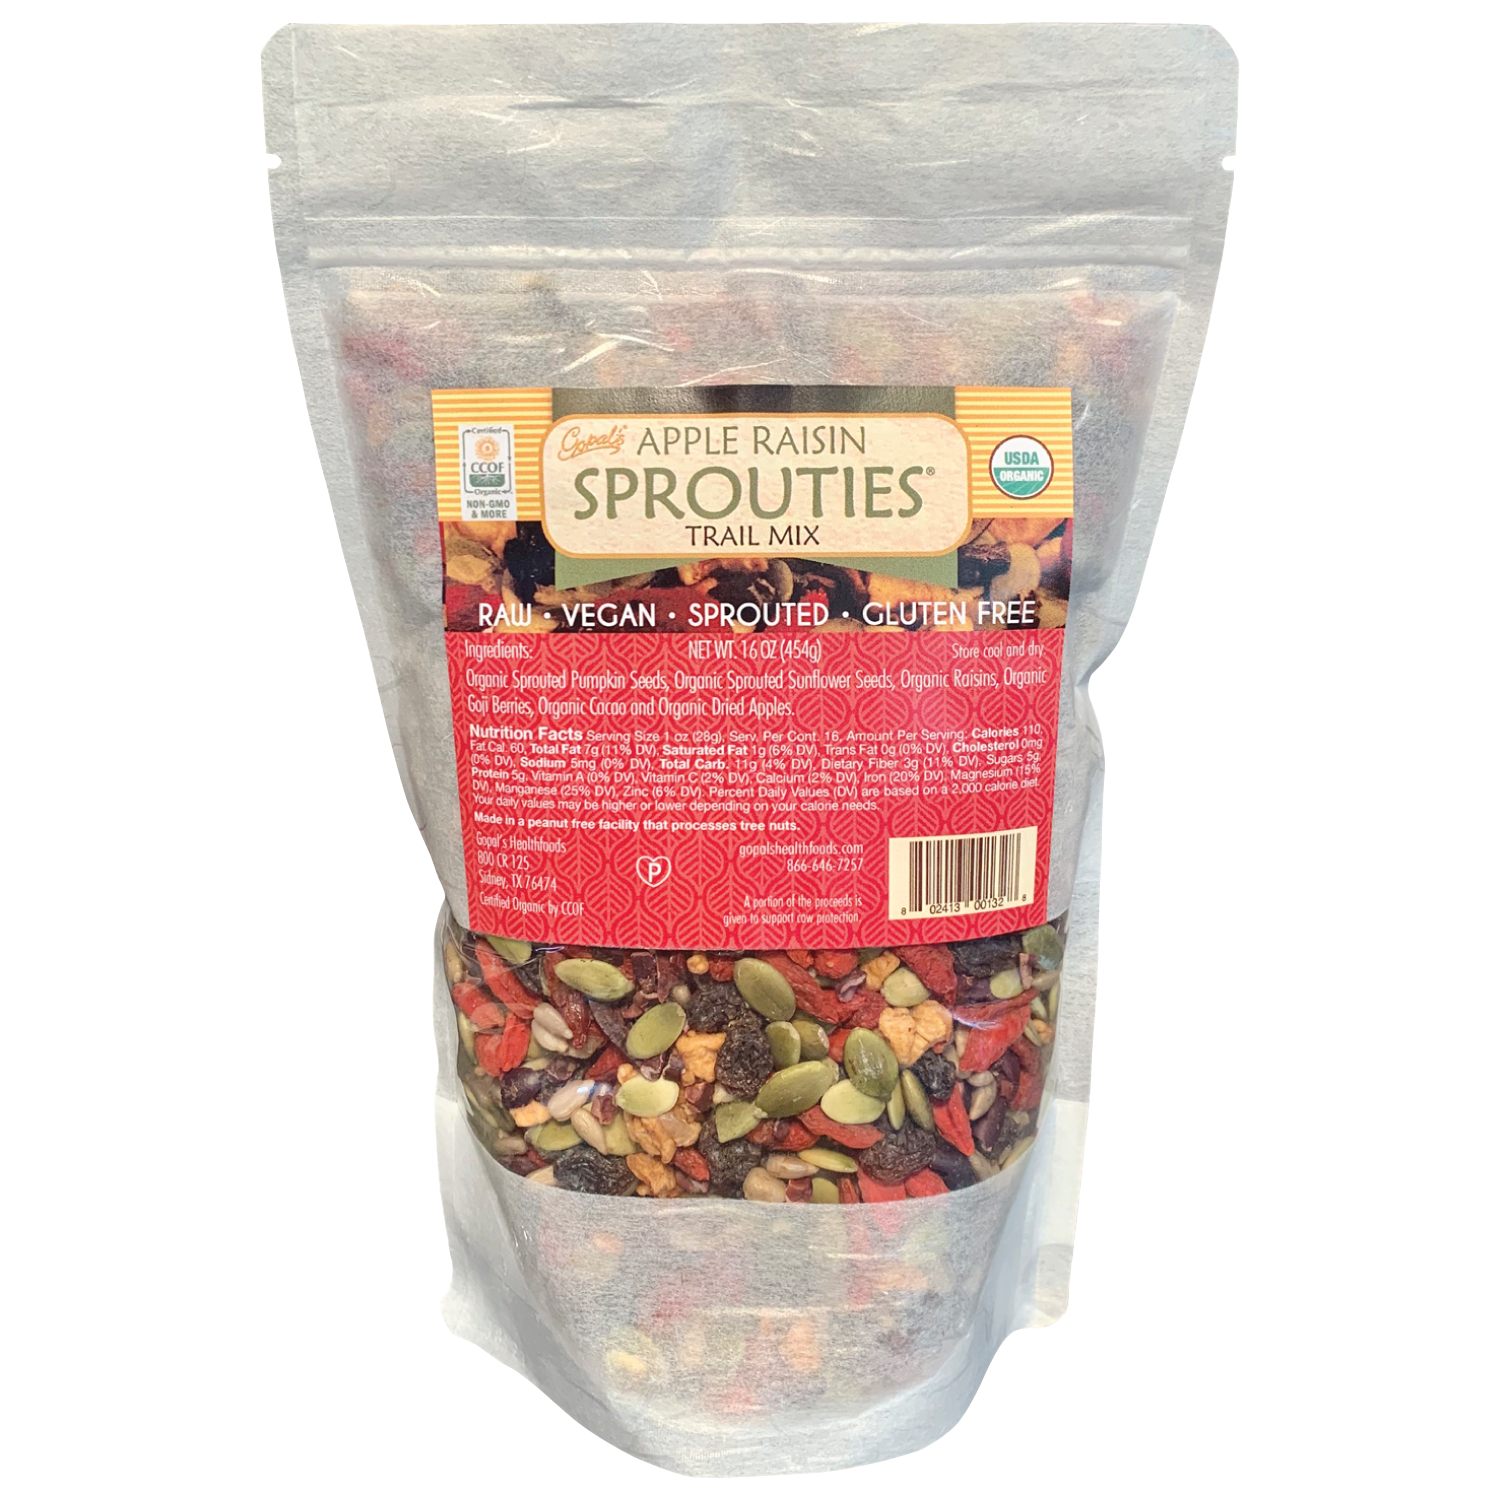 Apple Raisin Sprouties® Trail Mix 16oz